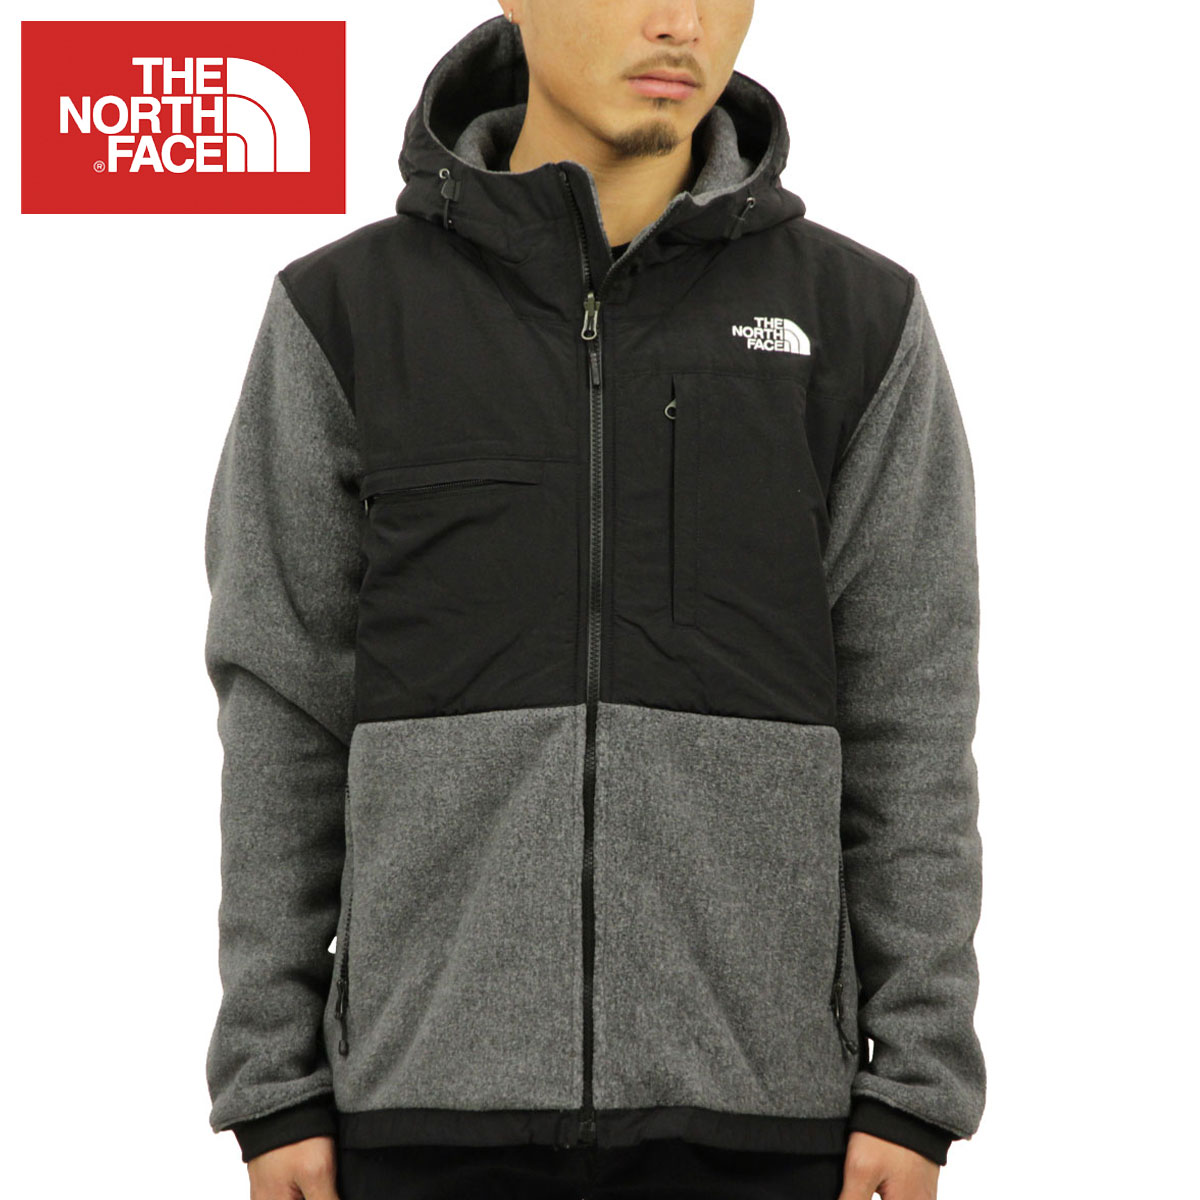 North Face The Regular Article Men Fleece Jacket Denali 2 Hoo Recycled Charcoal Grey Heather Tnf Black Nf0a2tbn Ma9